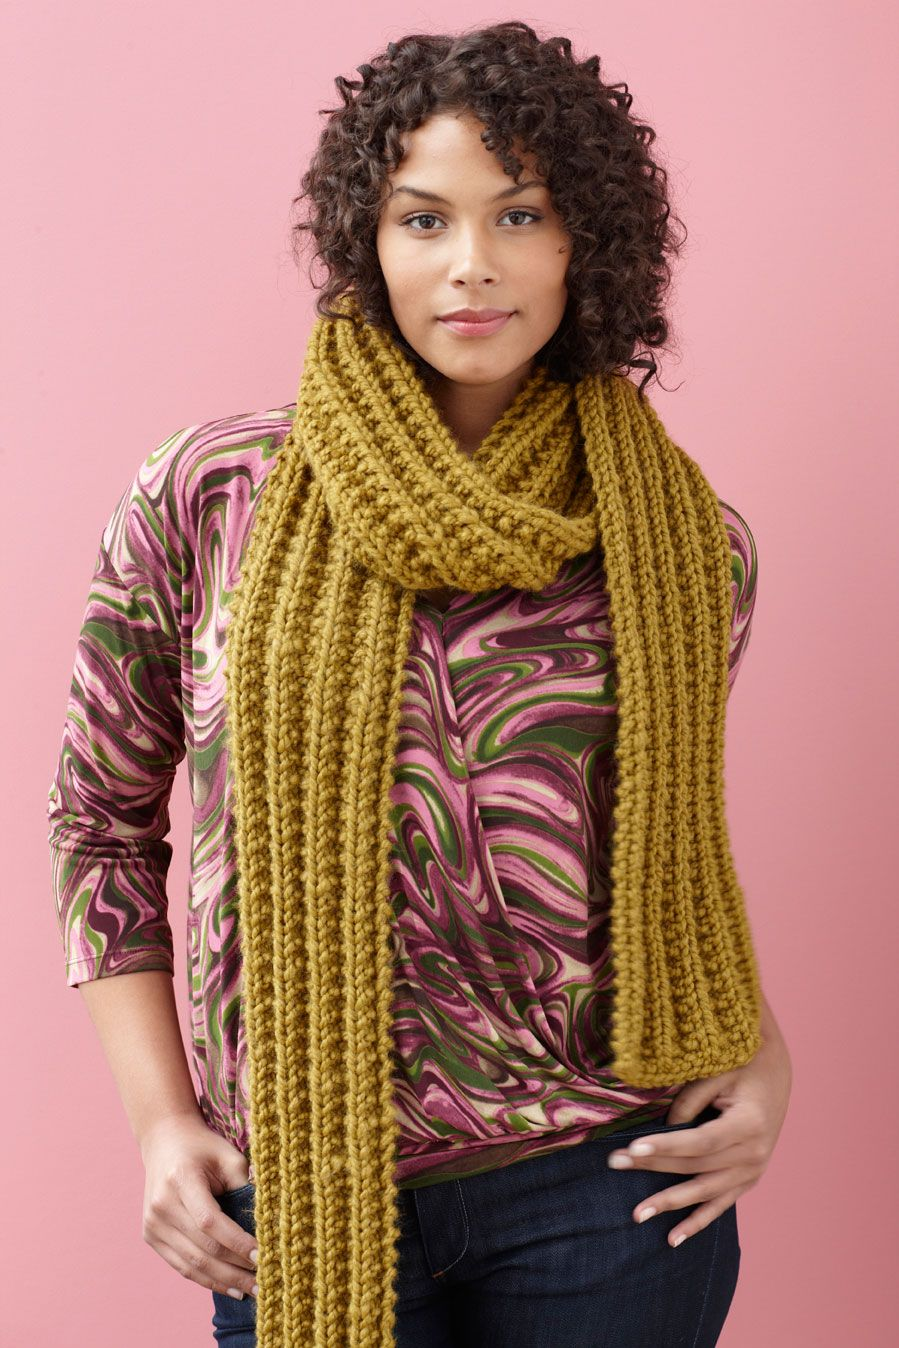 Im going to knit this for my mother in black lion brands wool im going to knit this for my mother in black lion brands wool bankloansurffo Choice Image